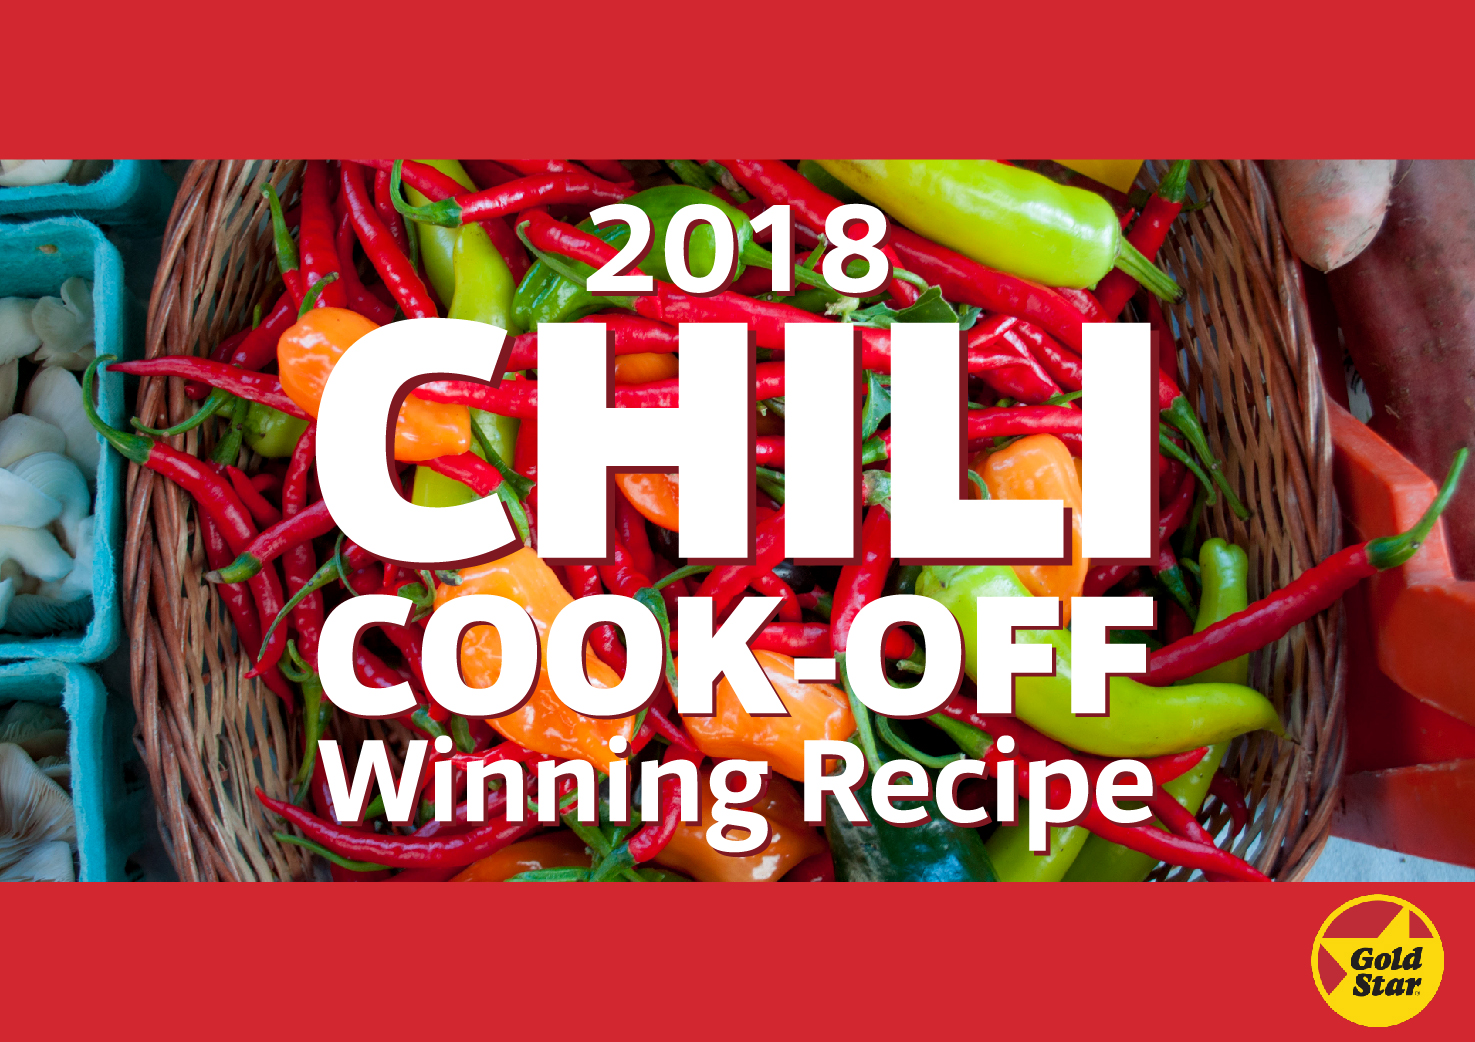 Chili cook off winning recipe